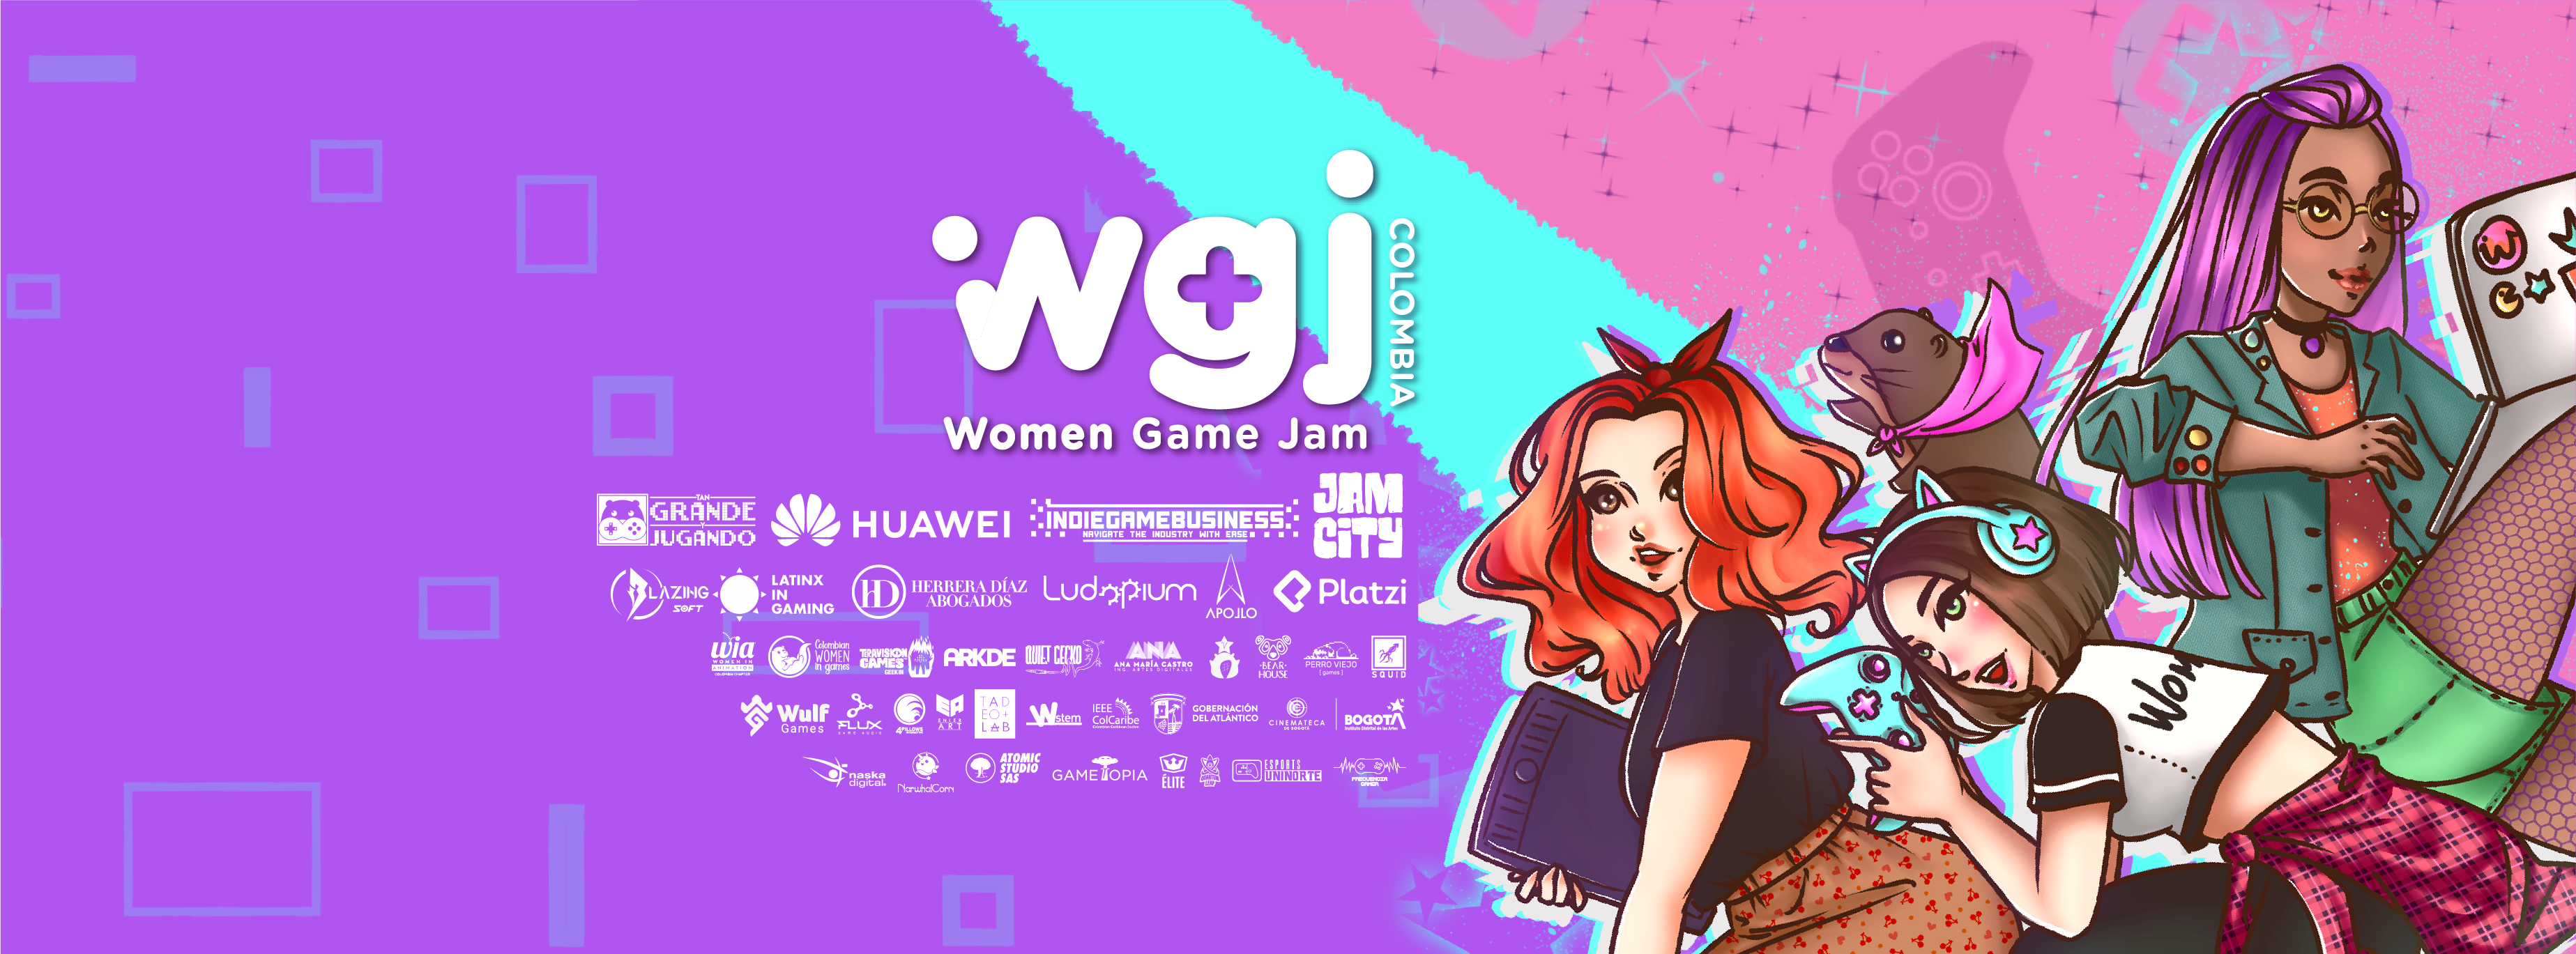 Women Game Jam Colombia